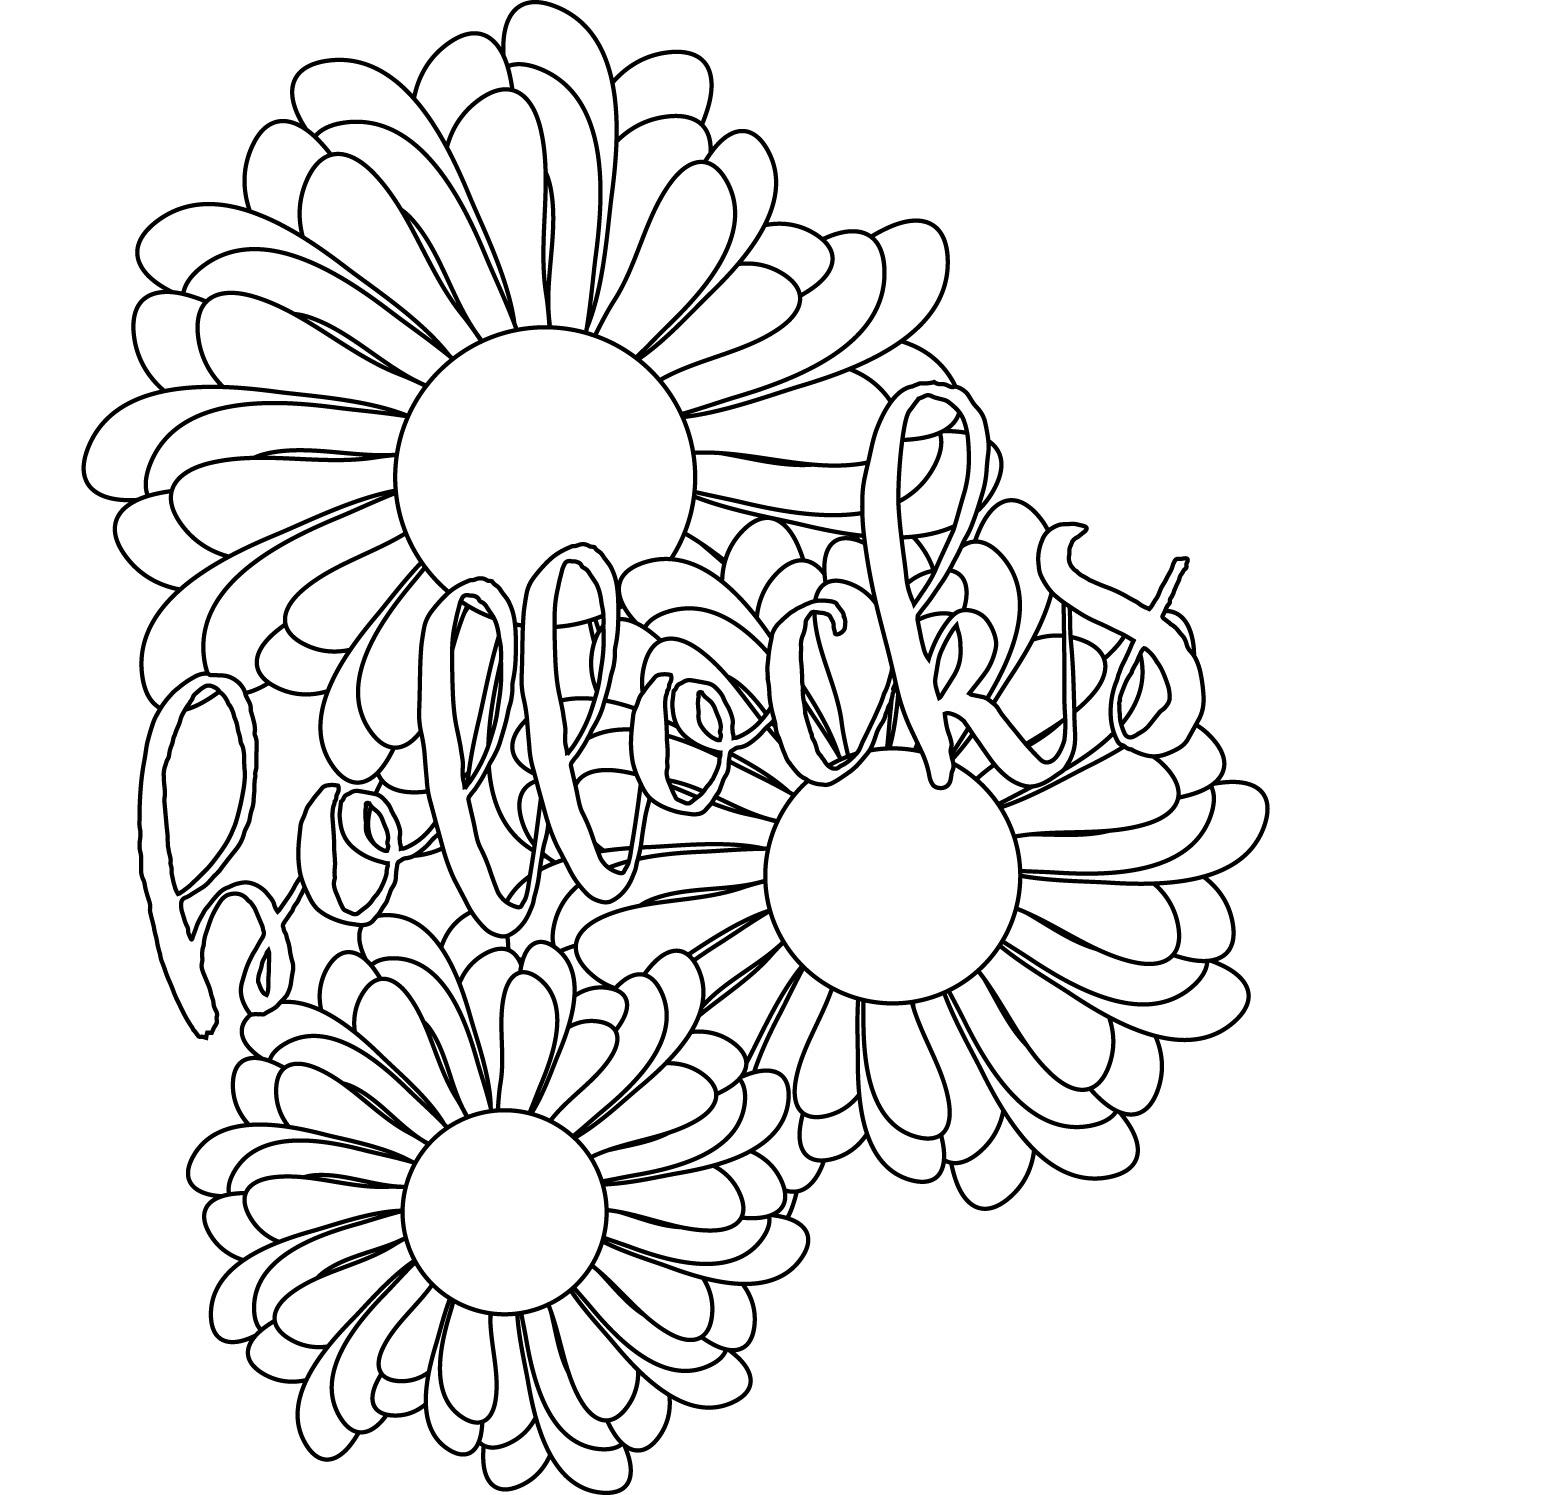 Swear Words Coloring Book. Create F***ing Amazing